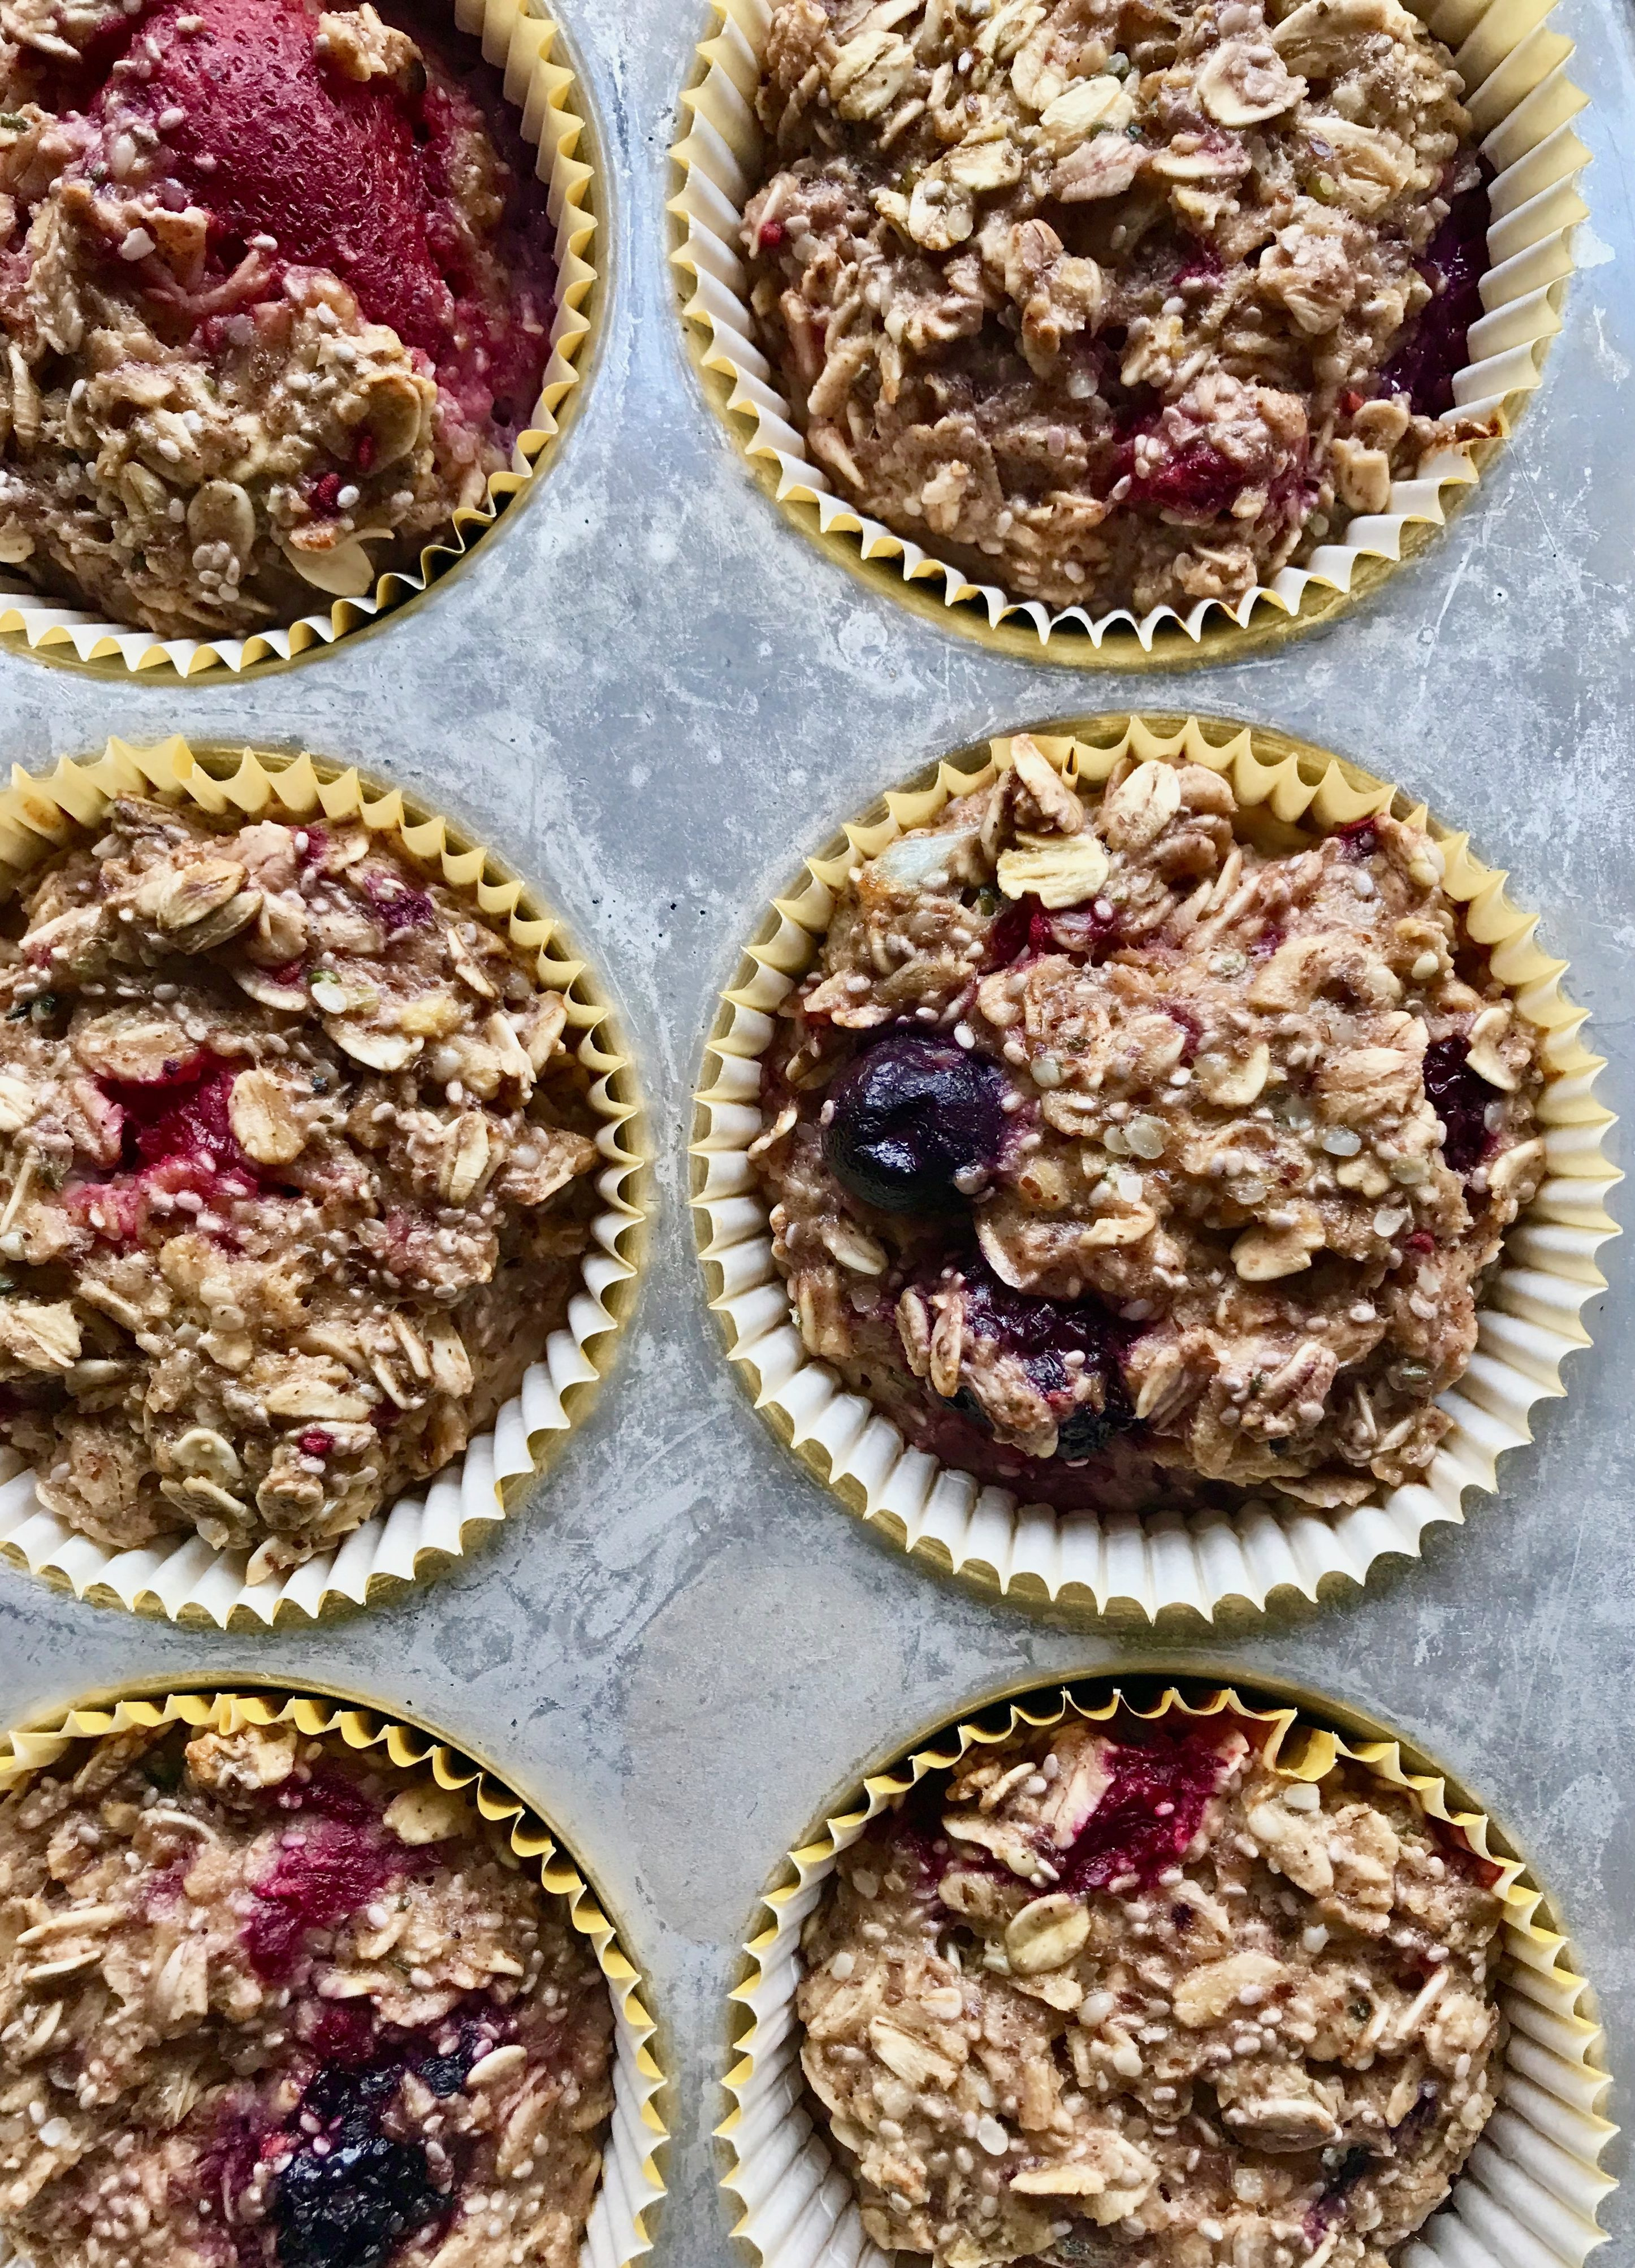 The 10 Best On-The-Go Breakfasts